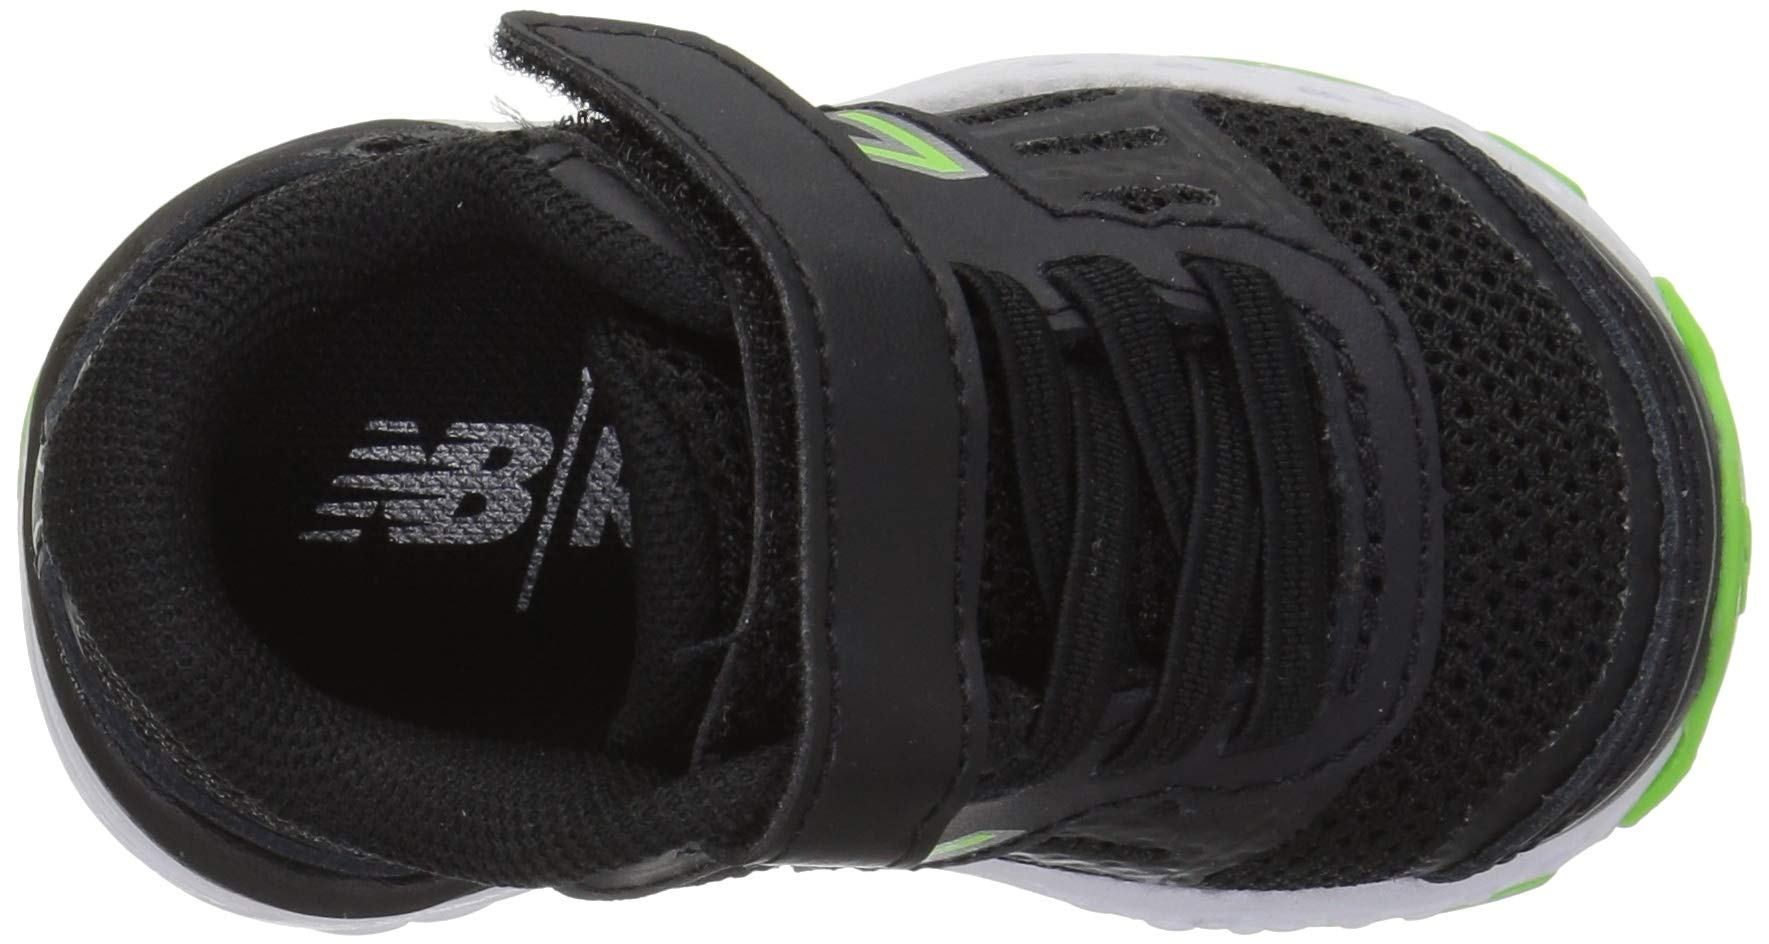 New Balance Boys' 680v5 Hook and Loop Running Shoe Black/RBG Green 2 M US Infant by New Balance (Image #8)